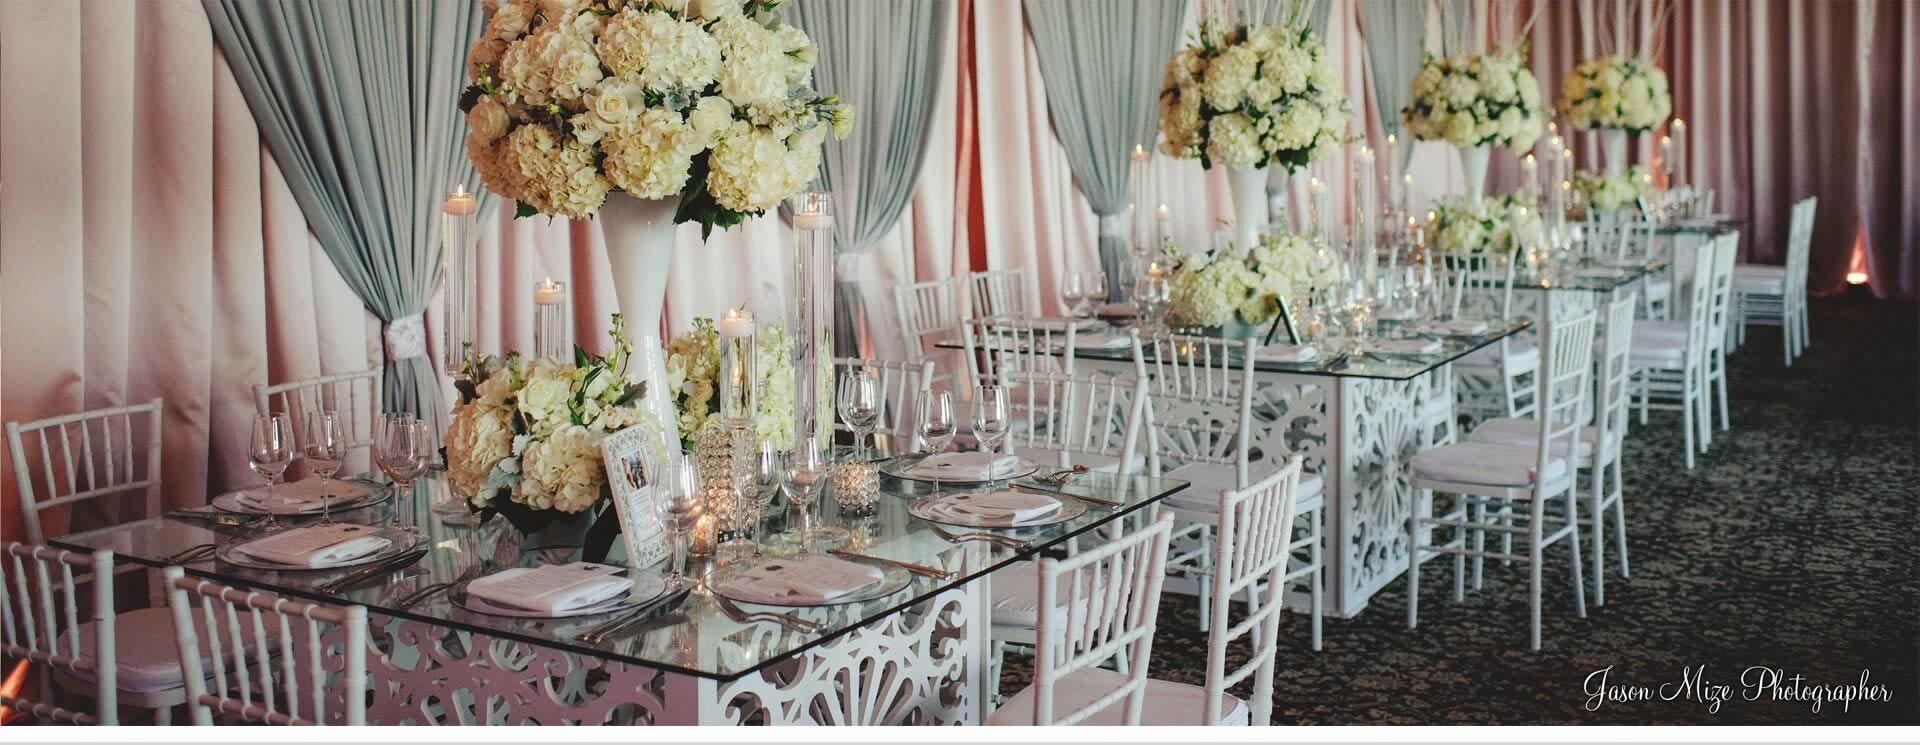 Chair Rental Atlanta Wedding Party And Event Rentals Available Orlando Florida